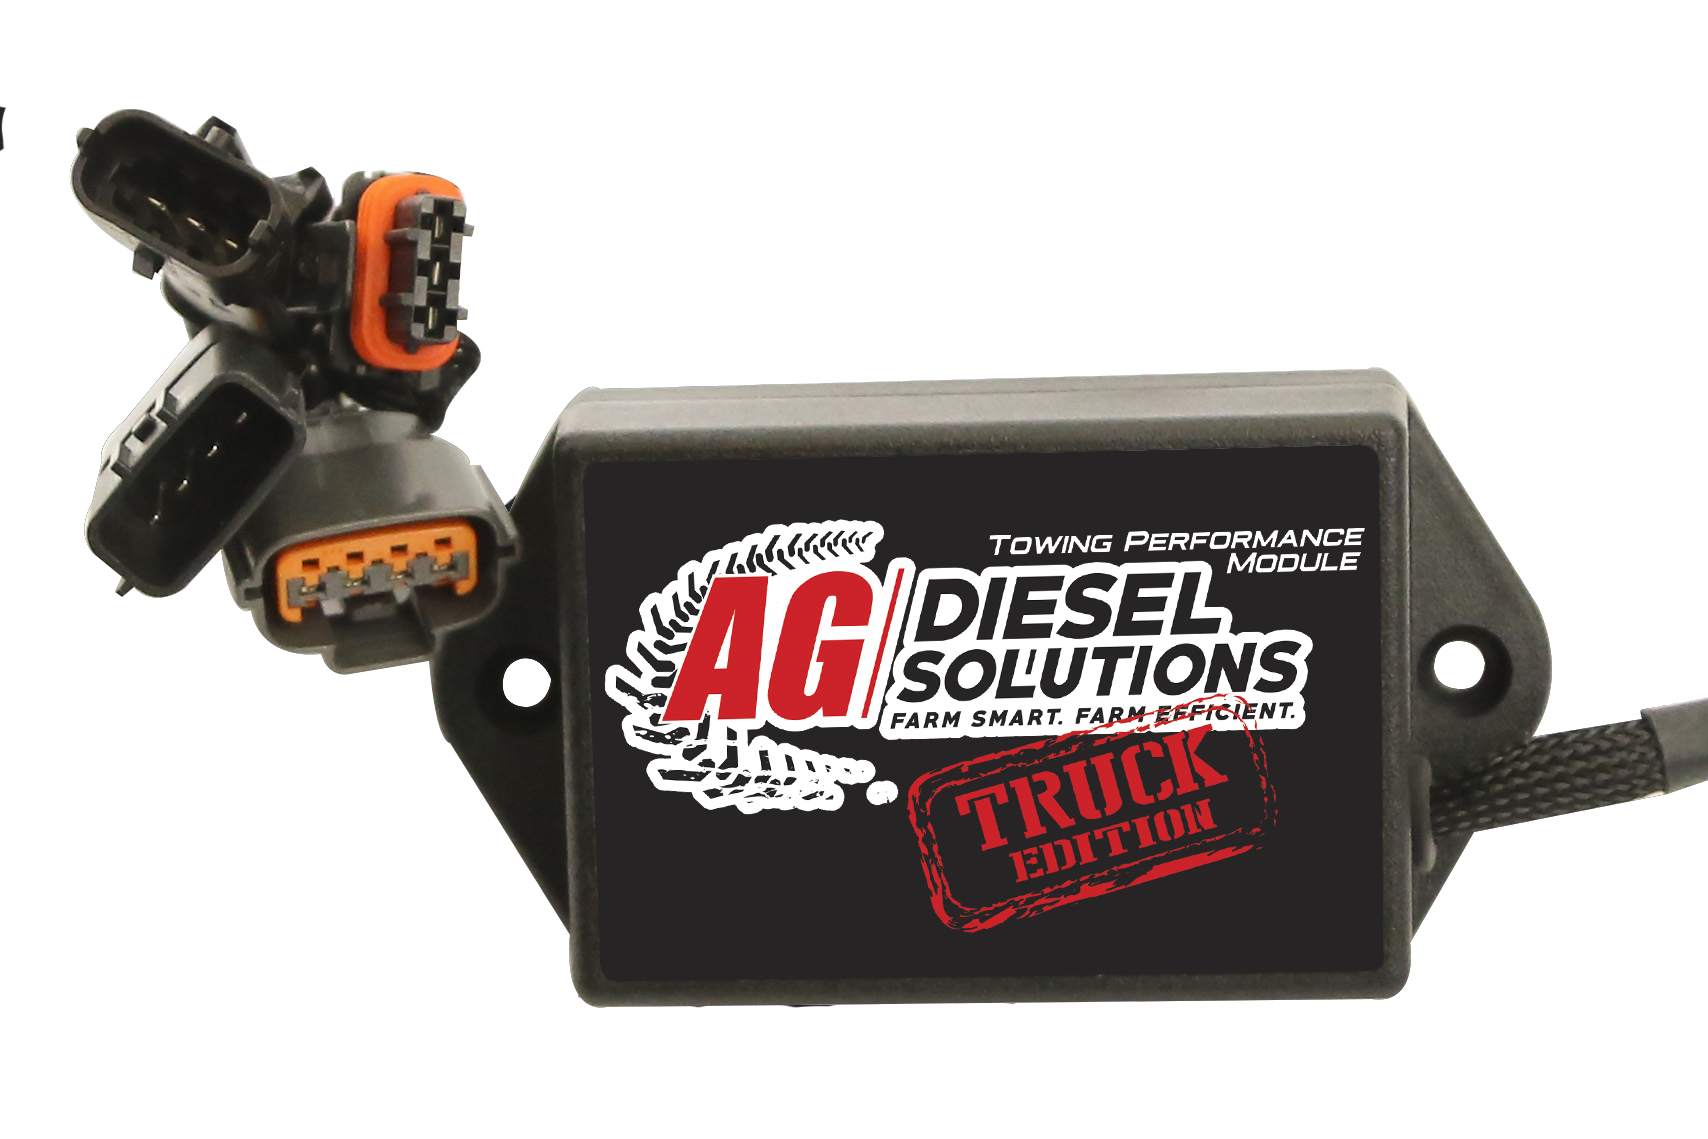 22510_Ag Diesel Solutions Electronic Performance Module for 15 - 16 6.5L EcoBoost V6 Engines